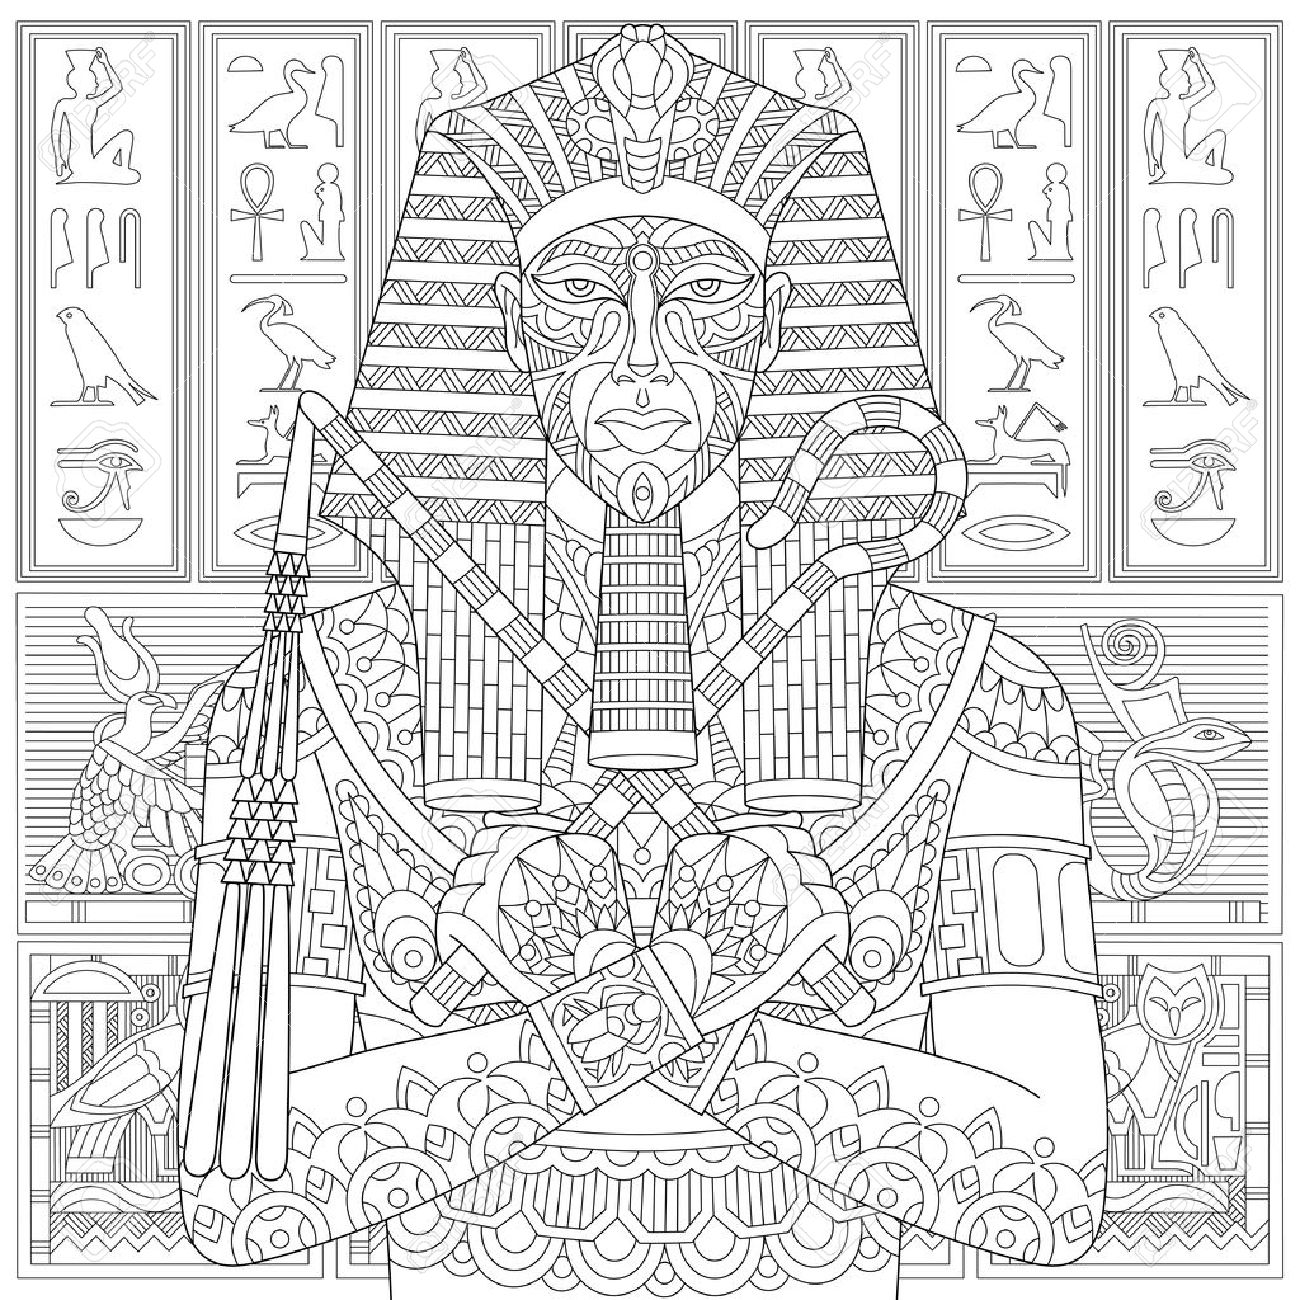 Stylized ancient pharaoh and egyptian symbols hieroglyphs on stylized ancient pharaoh and egyptian symbols hieroglyphs on the background freehand sketch for biocorpaavc